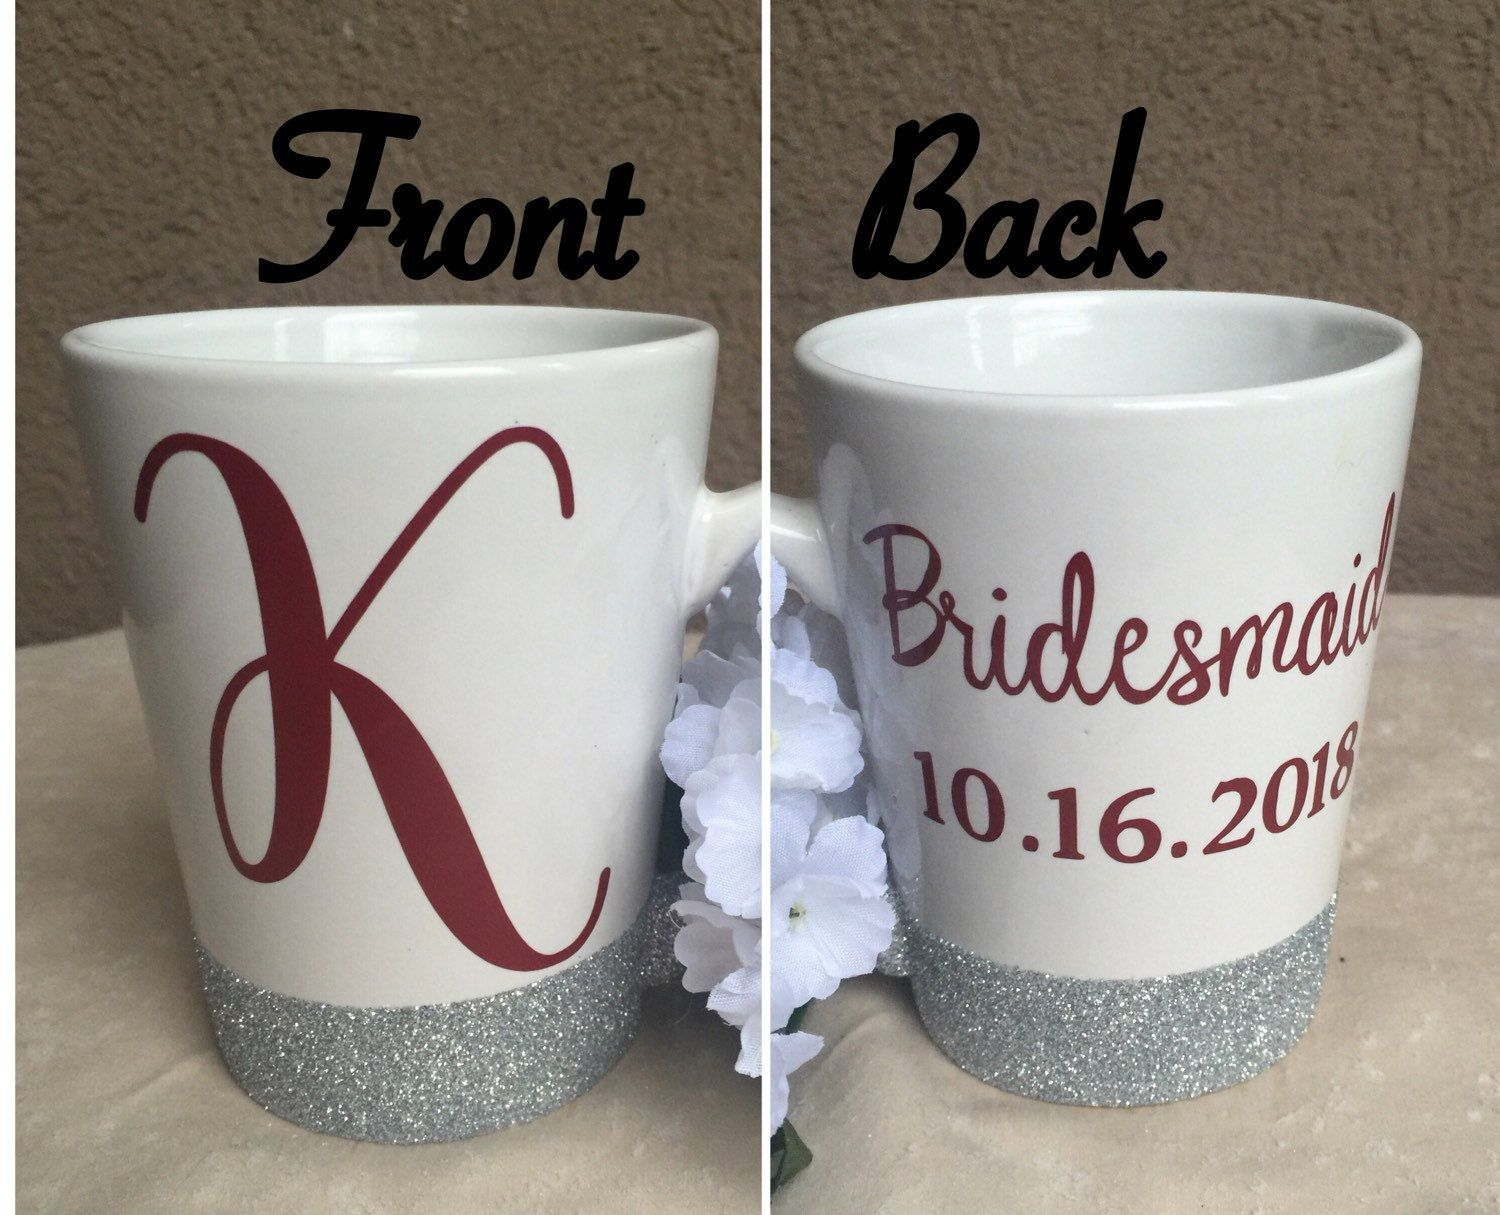 Wedding Personalized Bridesmaid Gifts 17 best ideas about bridesmaid mug on pinterest brides maid coffee mugglitter mugupper case initial mugcustom mugbridesmaid giftbridal party giftspersonalized cof